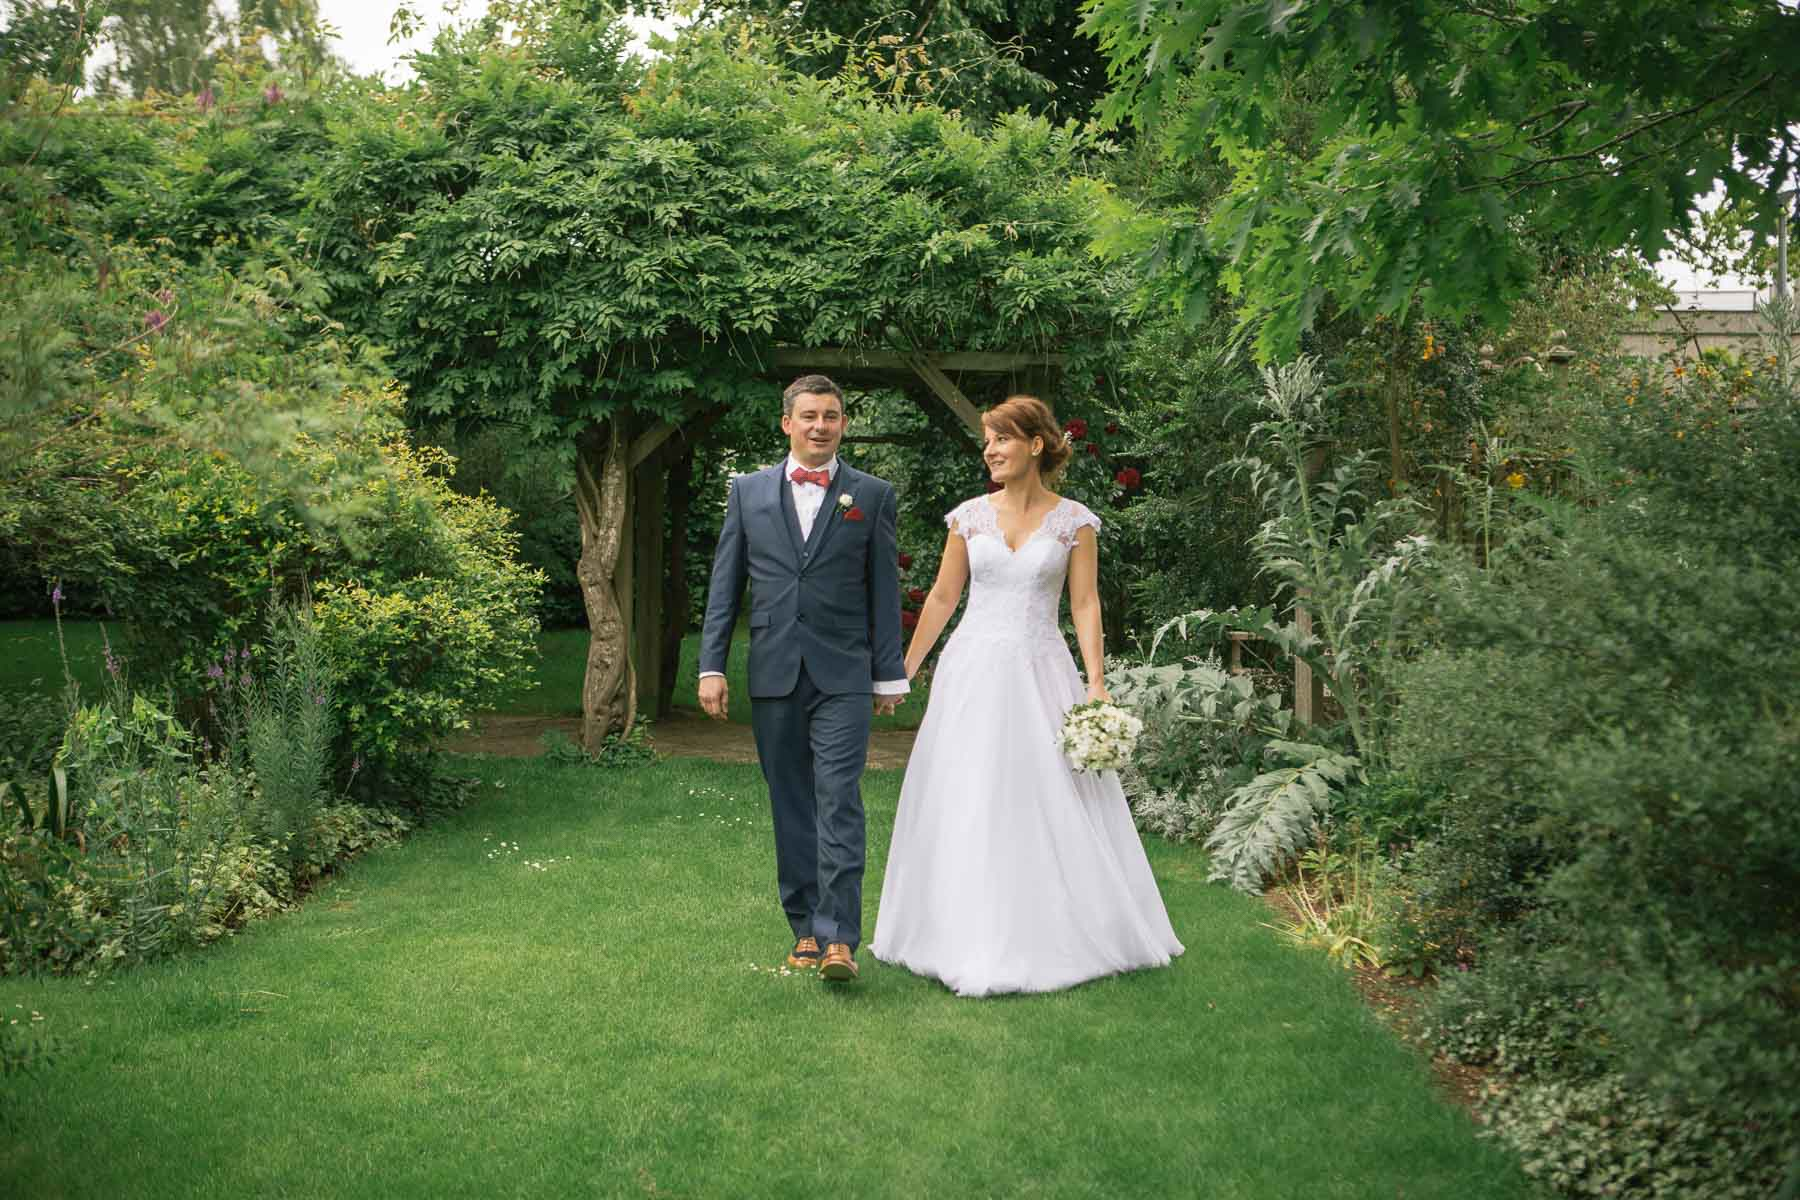 Bride and groom stand together in grounds of boathouse